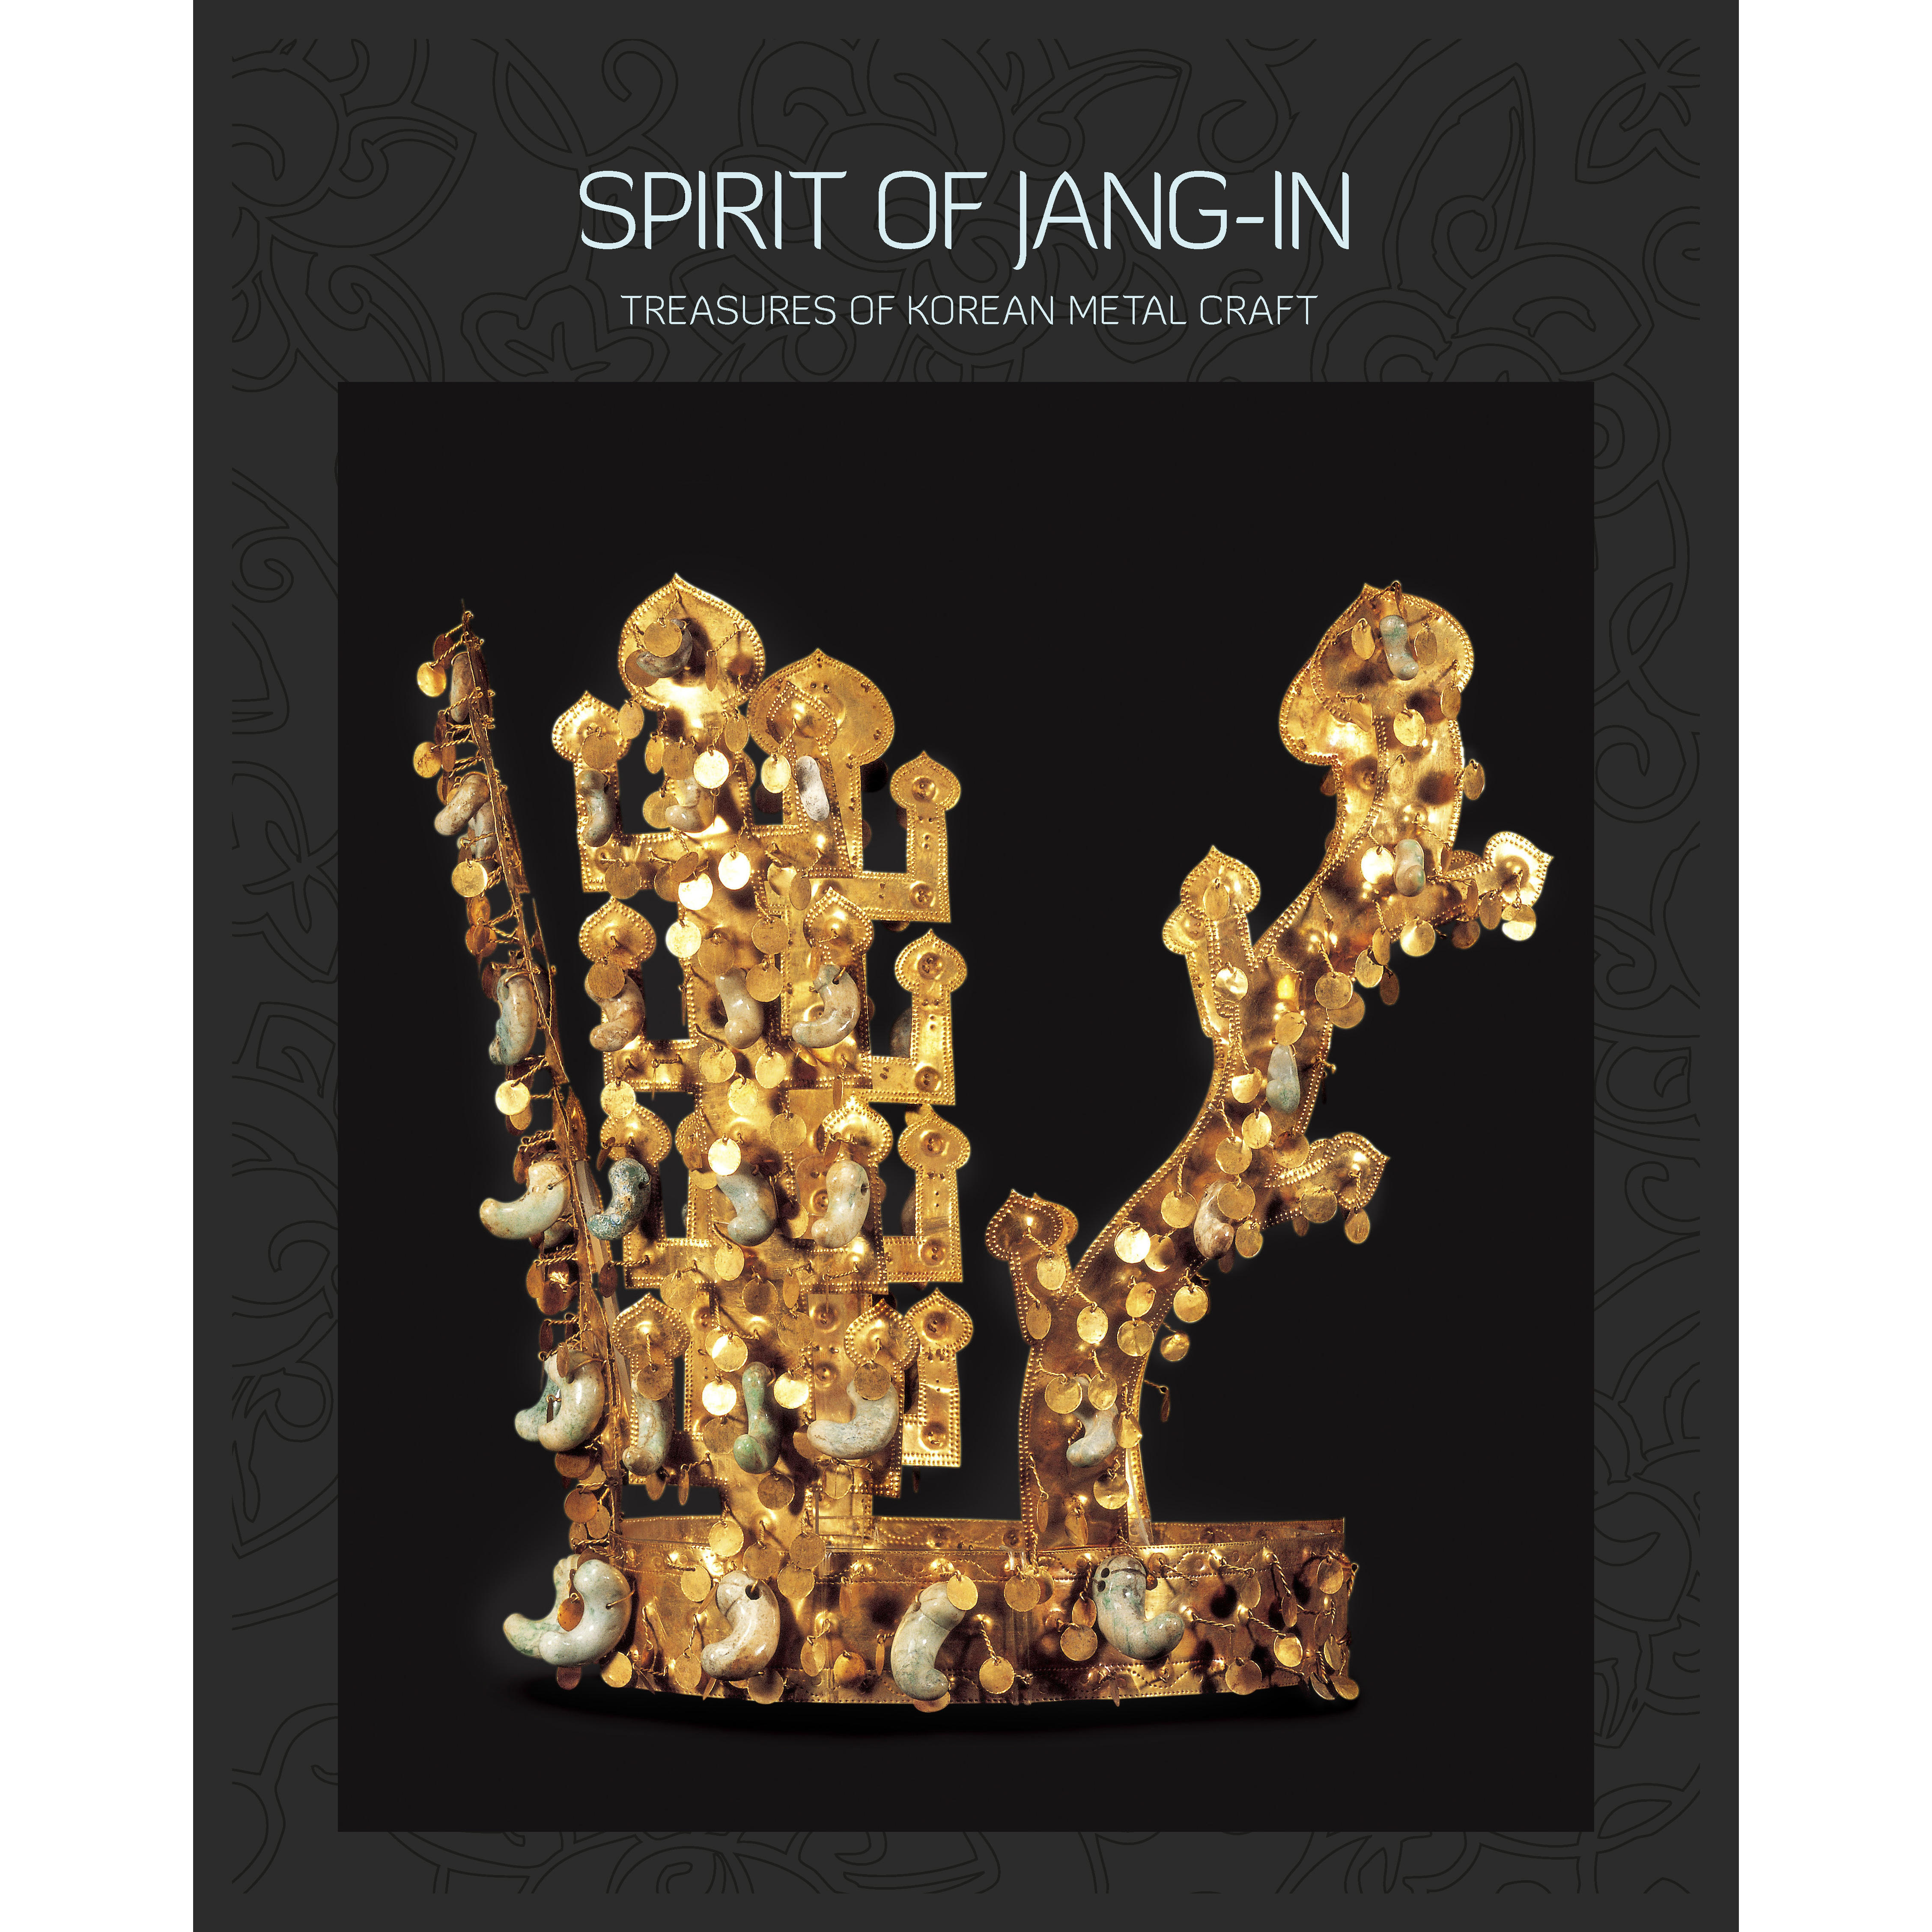 Book cover, Spirit of Jang-in: Treasures of Korean Metal Craft.